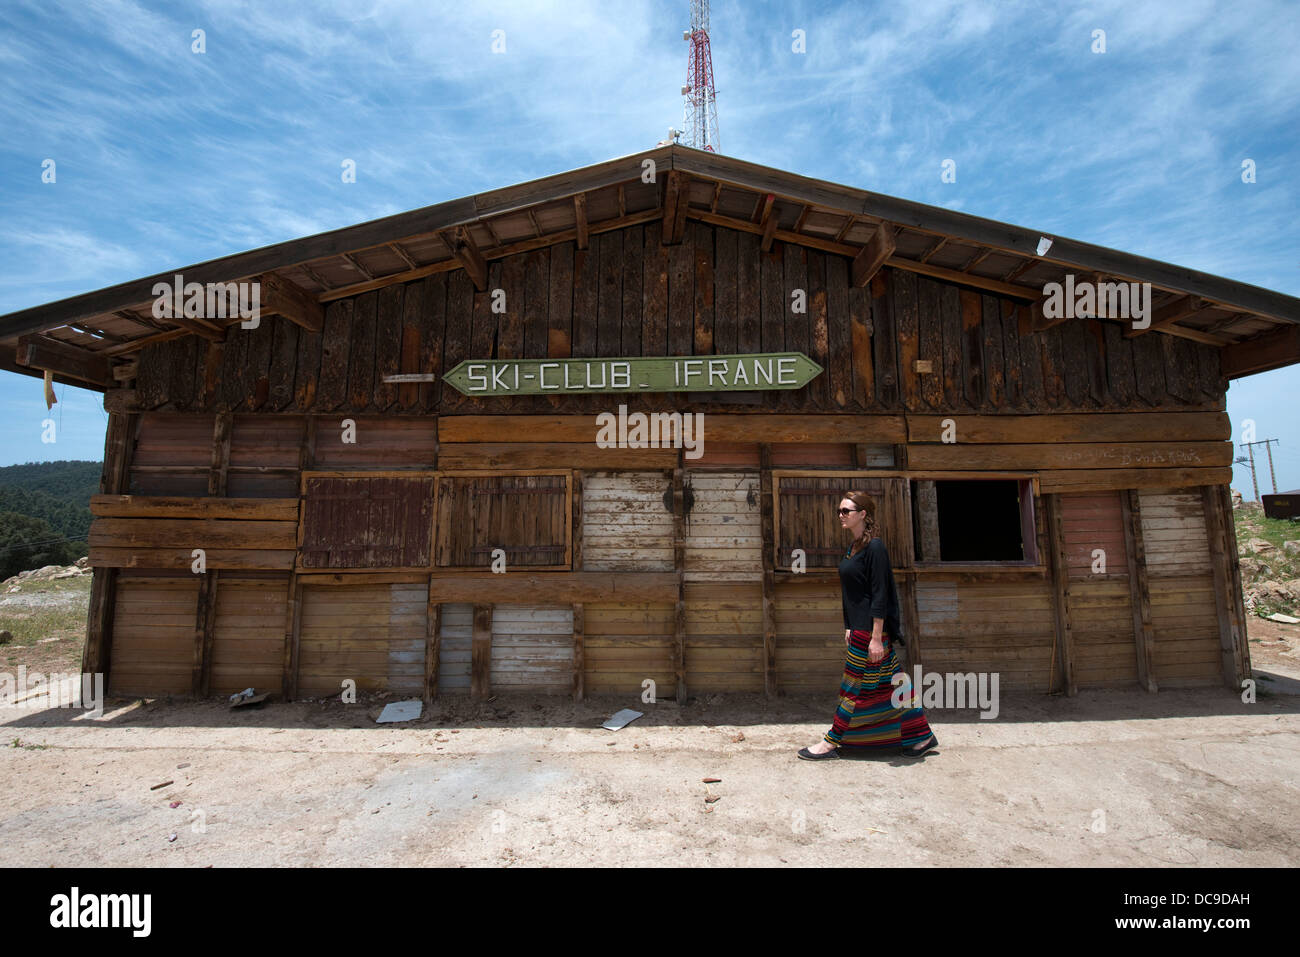 A woman walks in front of the old ticket office at the Ifrane Ski Club in Ifrane, Morocco. - Stock Image